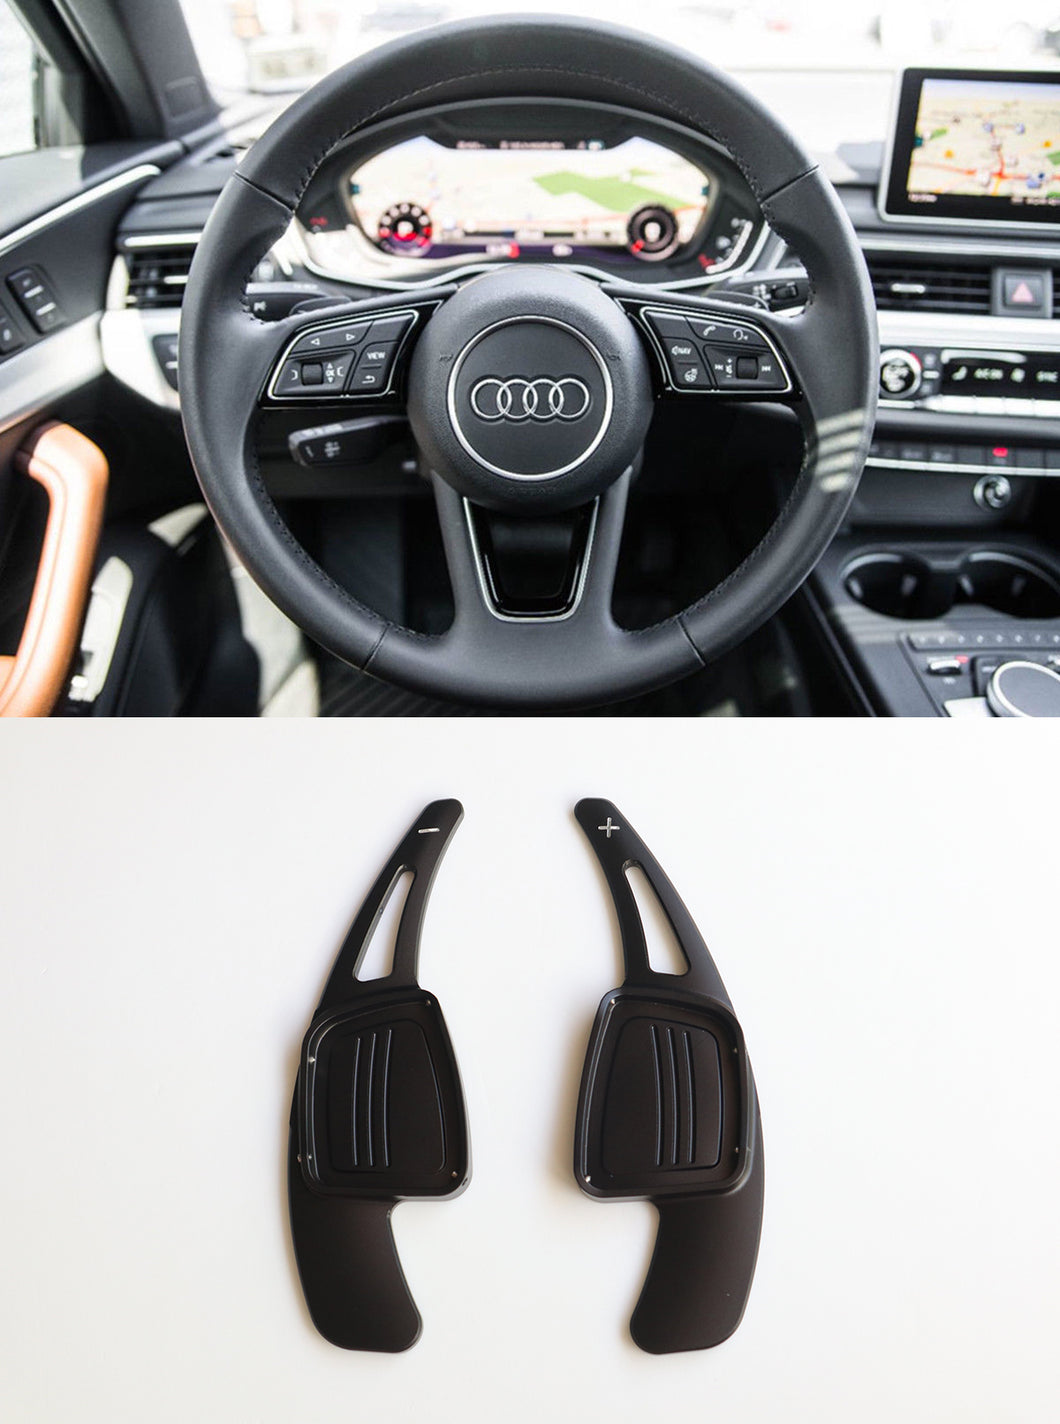 Alloy Made Steering Wheel DSG Paddle Shifter Extension for A3 A4L A5 Q7 TT TTS S4 Q2 S3 SQ 2016-2017 (Black)